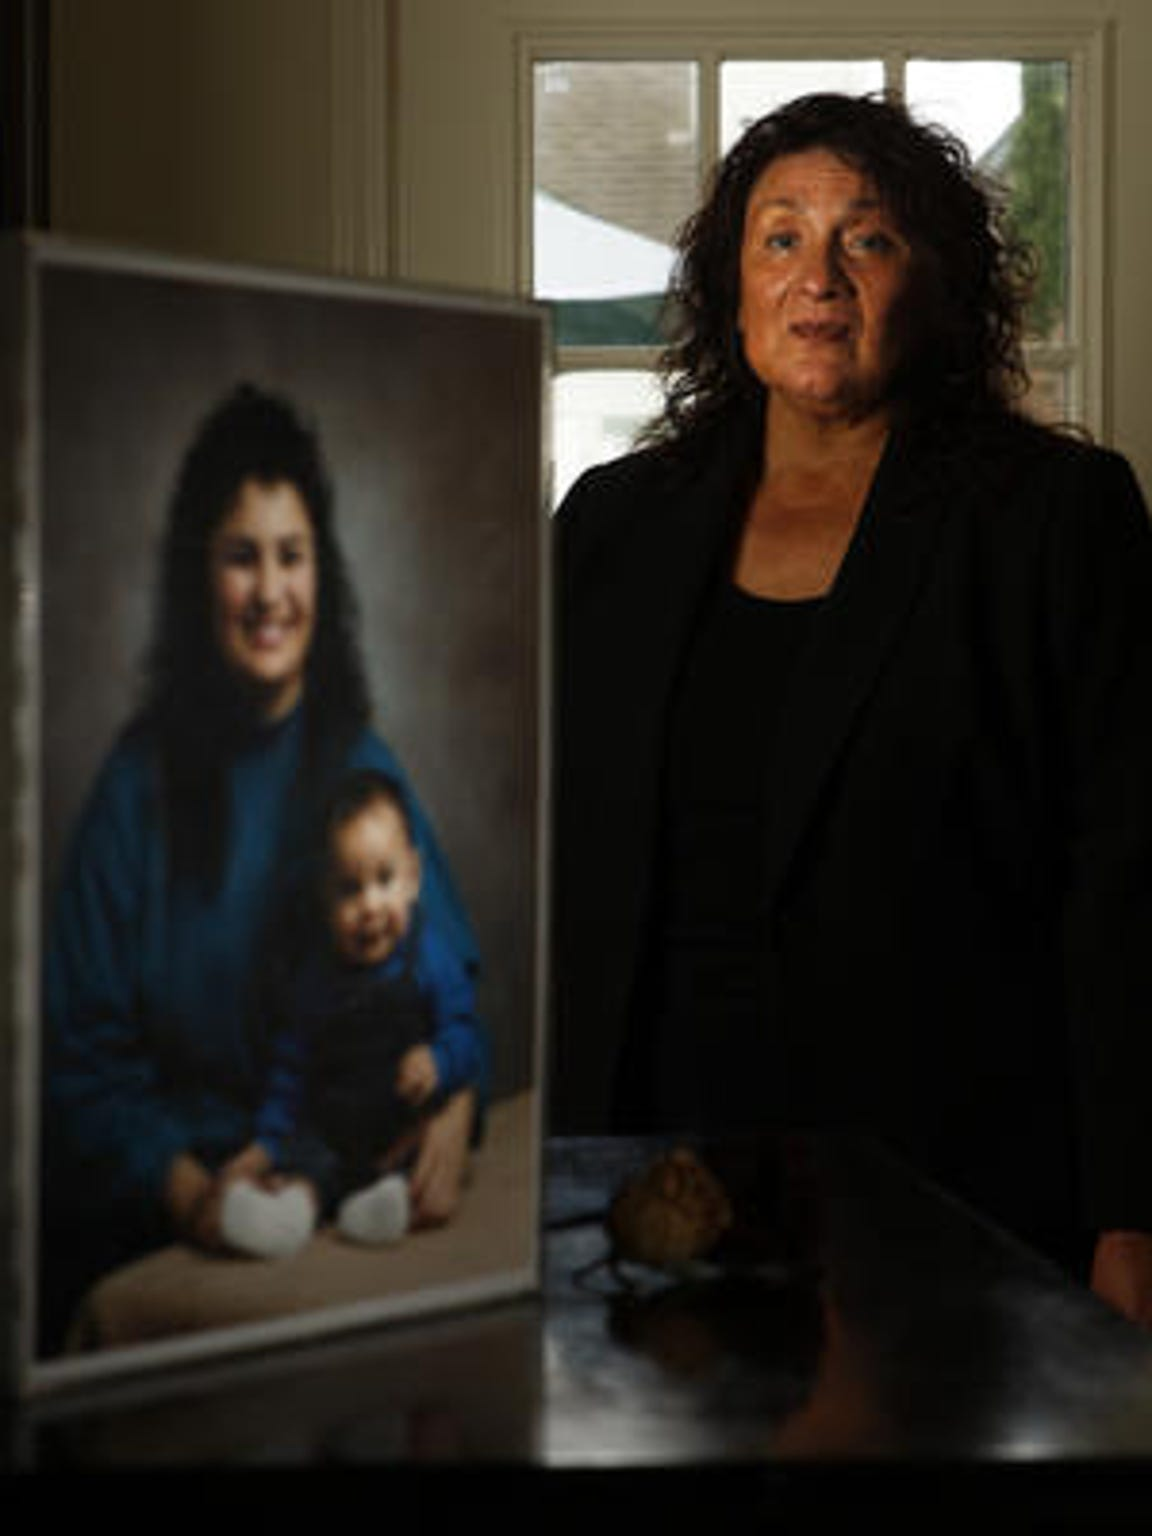 Angie Ortega, president of the Monterey County chapter of Parents of Murdered Children.